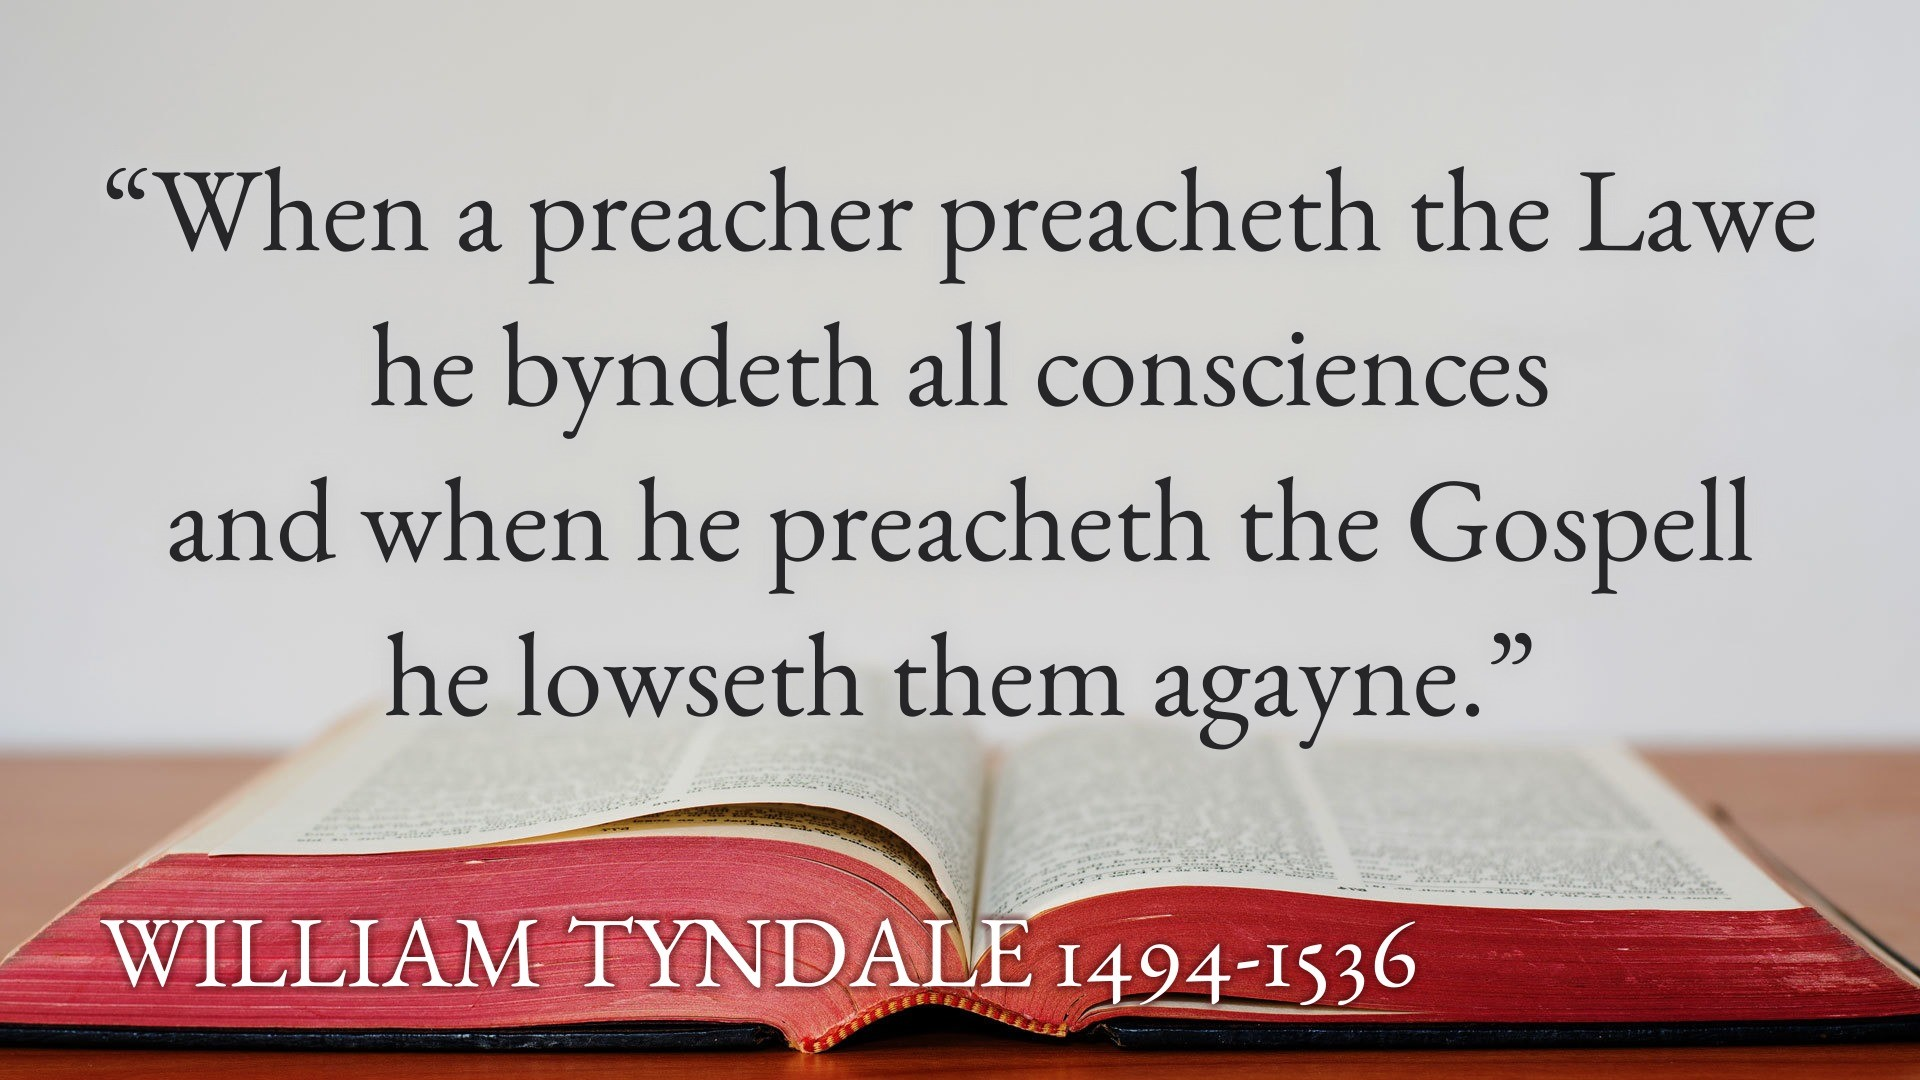 Tyndale on Law